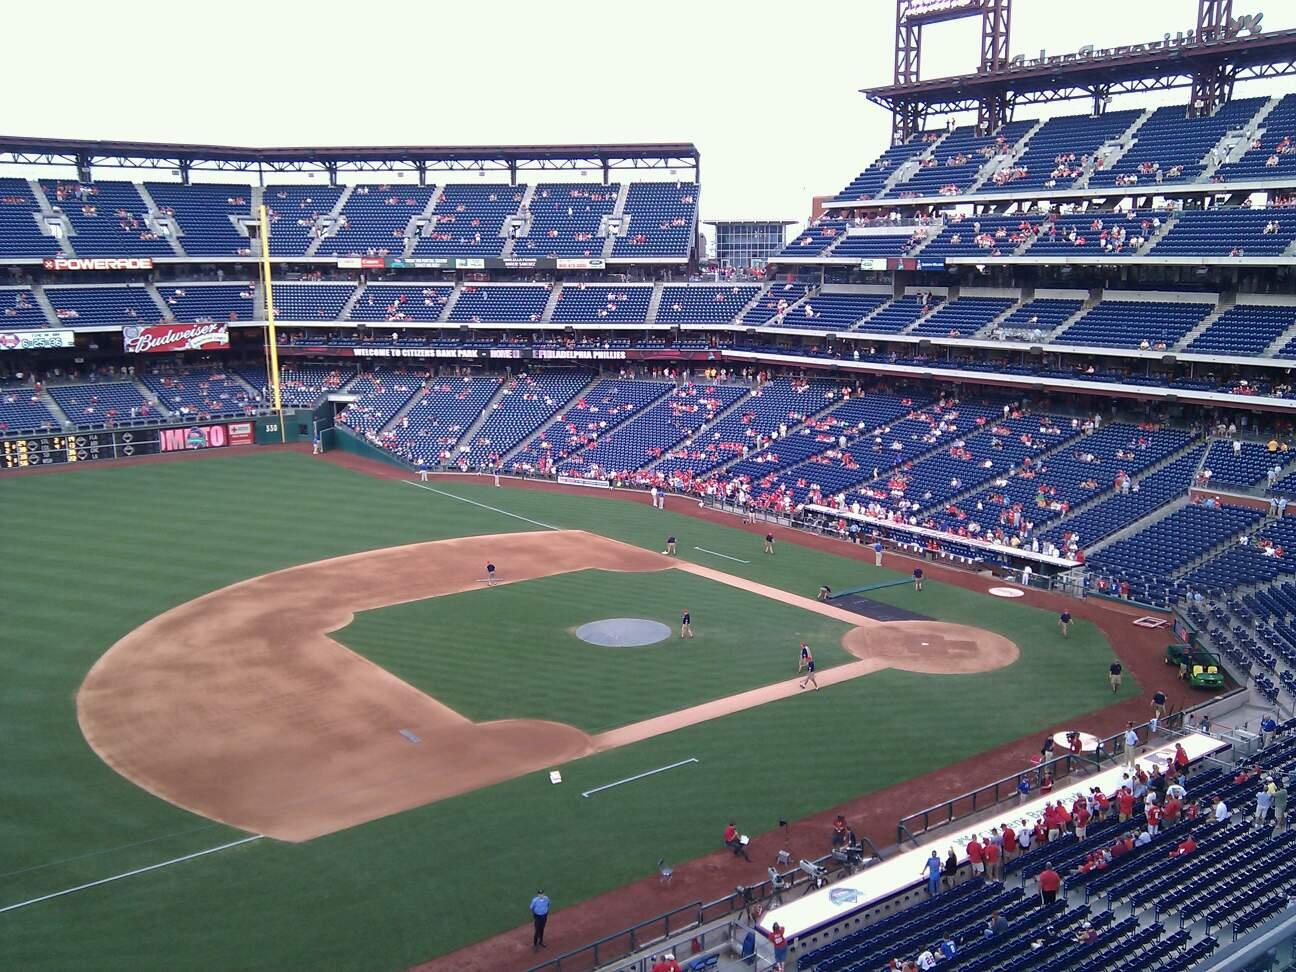 Citizens Bank Park Section 328 Row 1 Seat 22